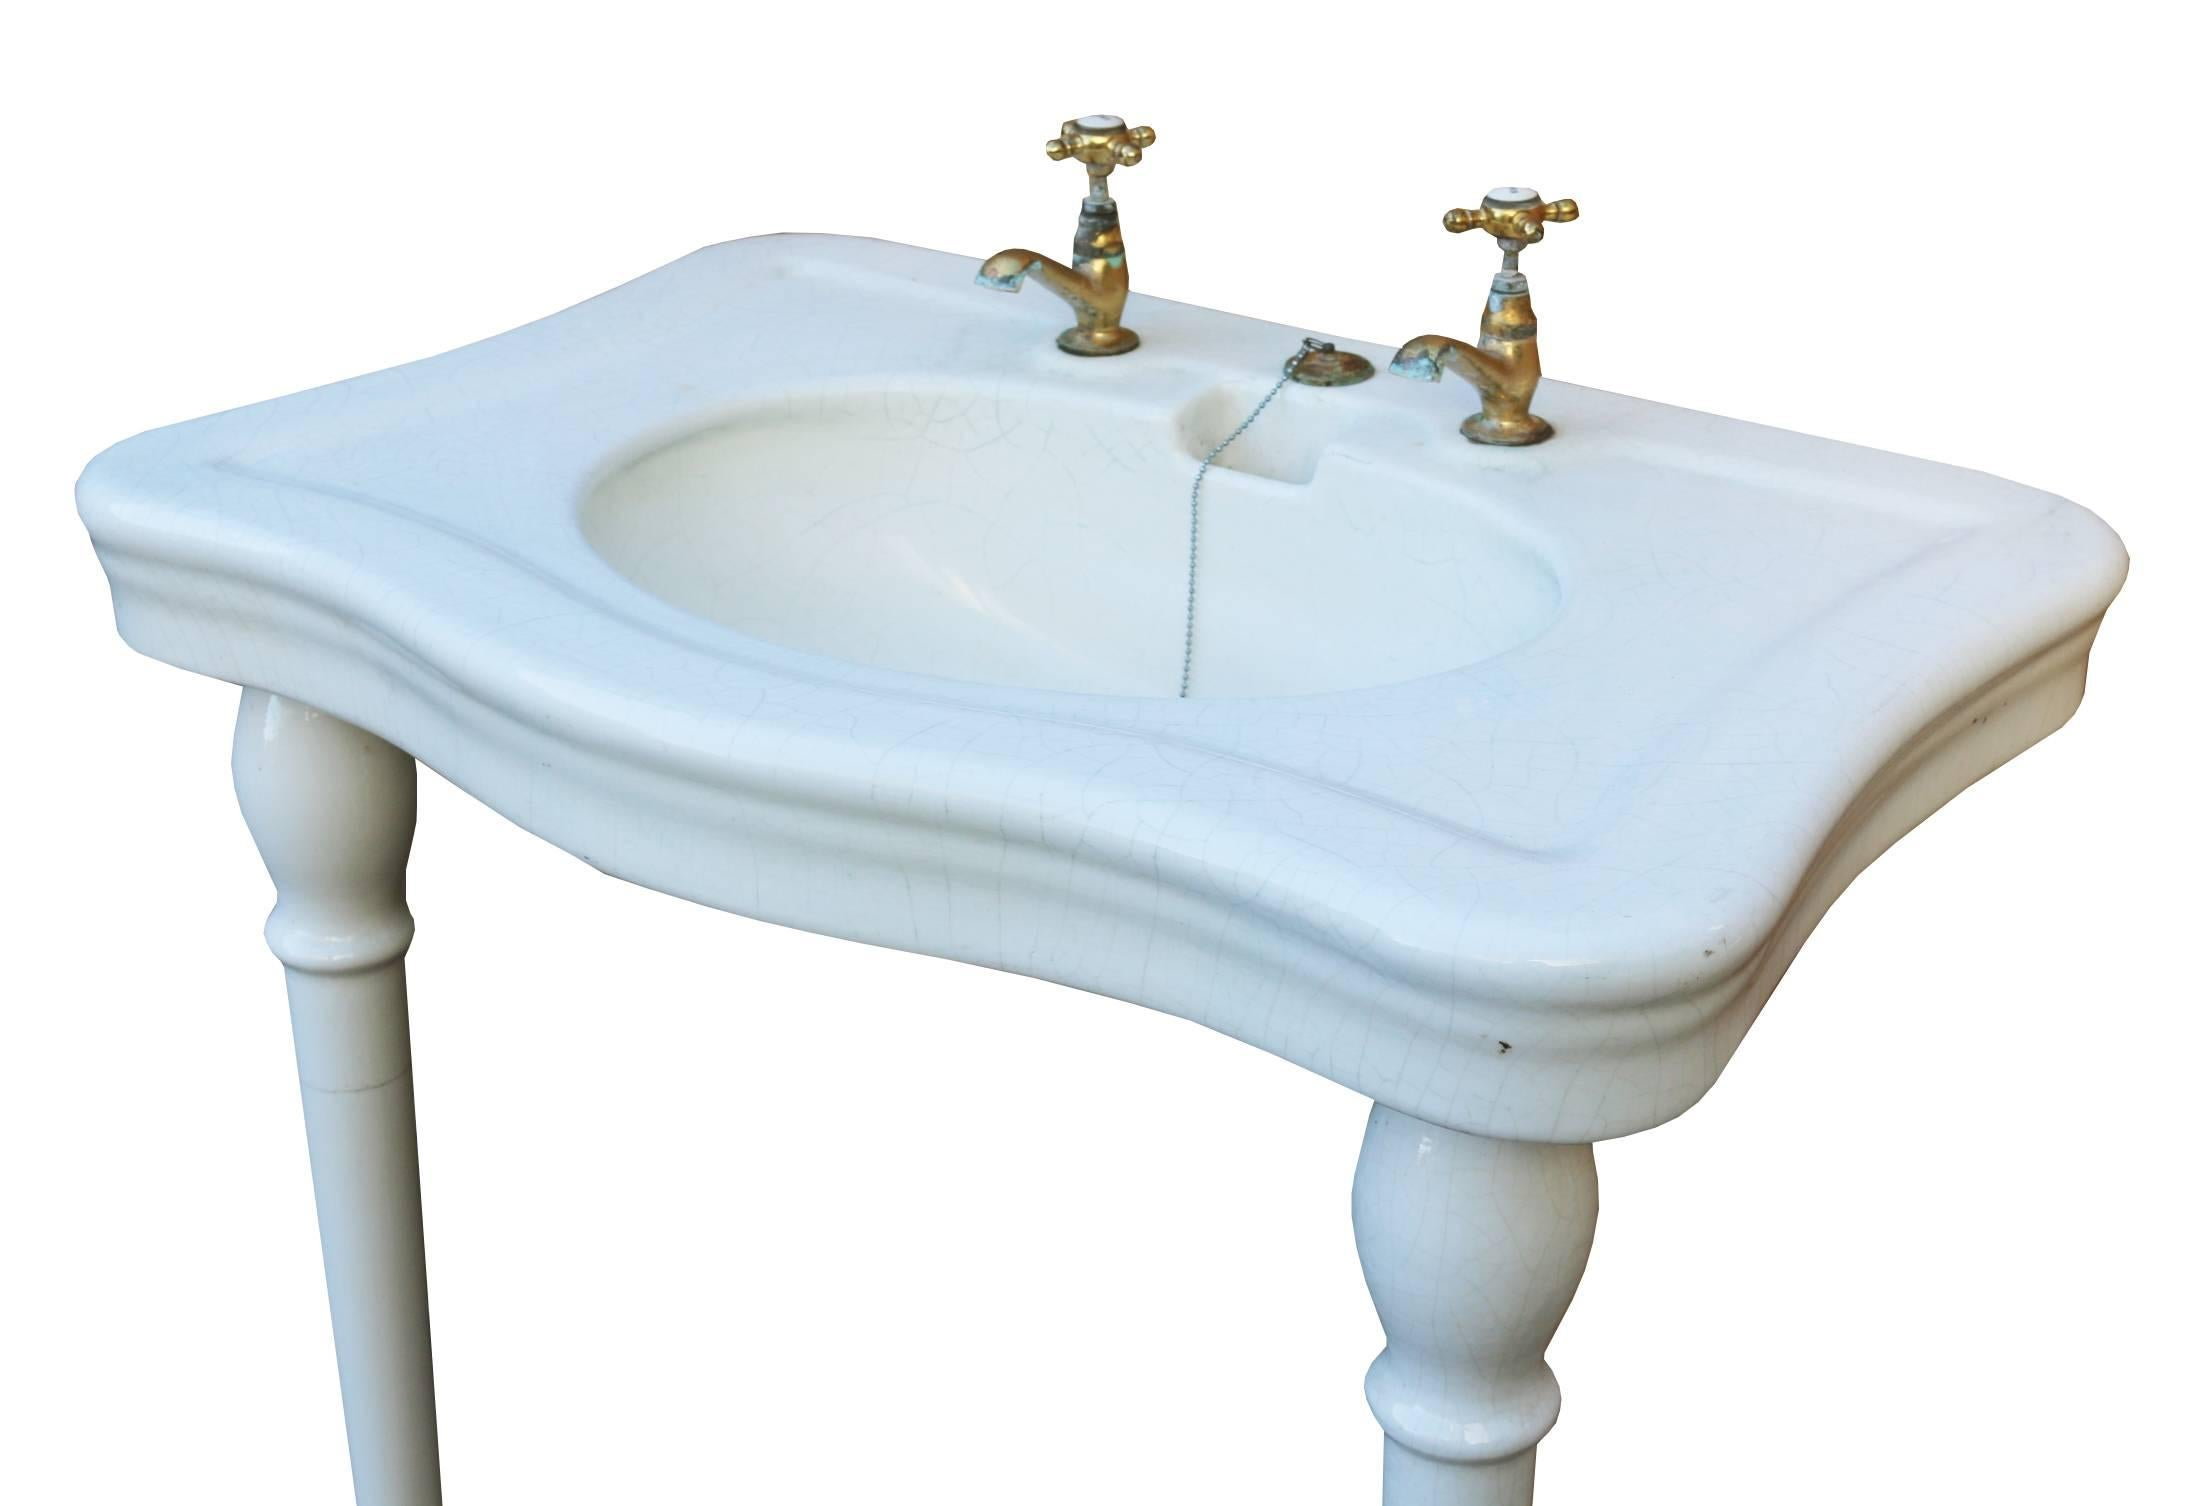 Jacob Delafon\' Antique French Basin/ Sink, circa 1900 For Sale at ...